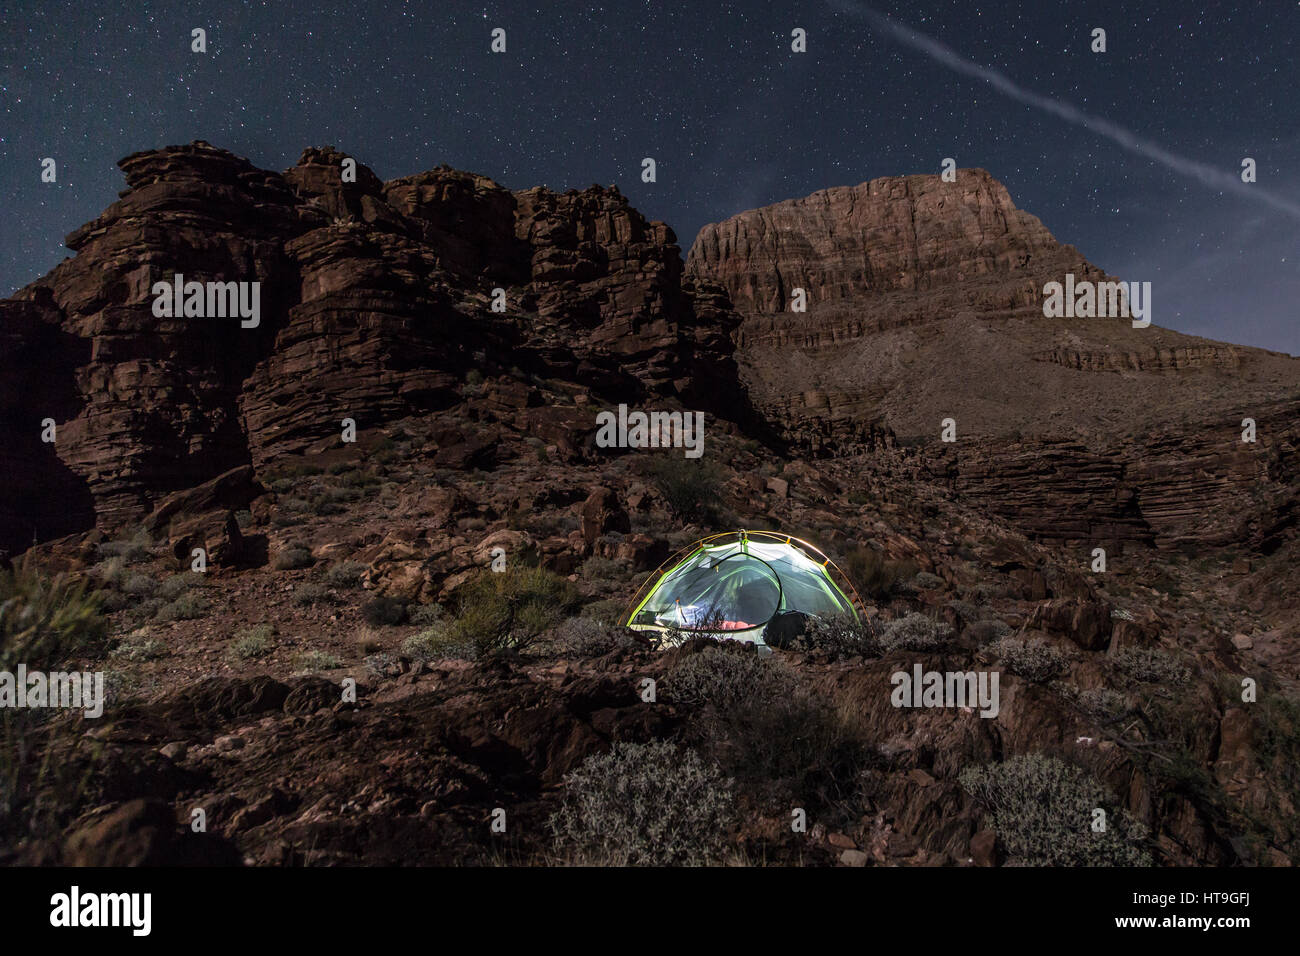 Camping in the wilderness of the Grand Canyon - Stock Image